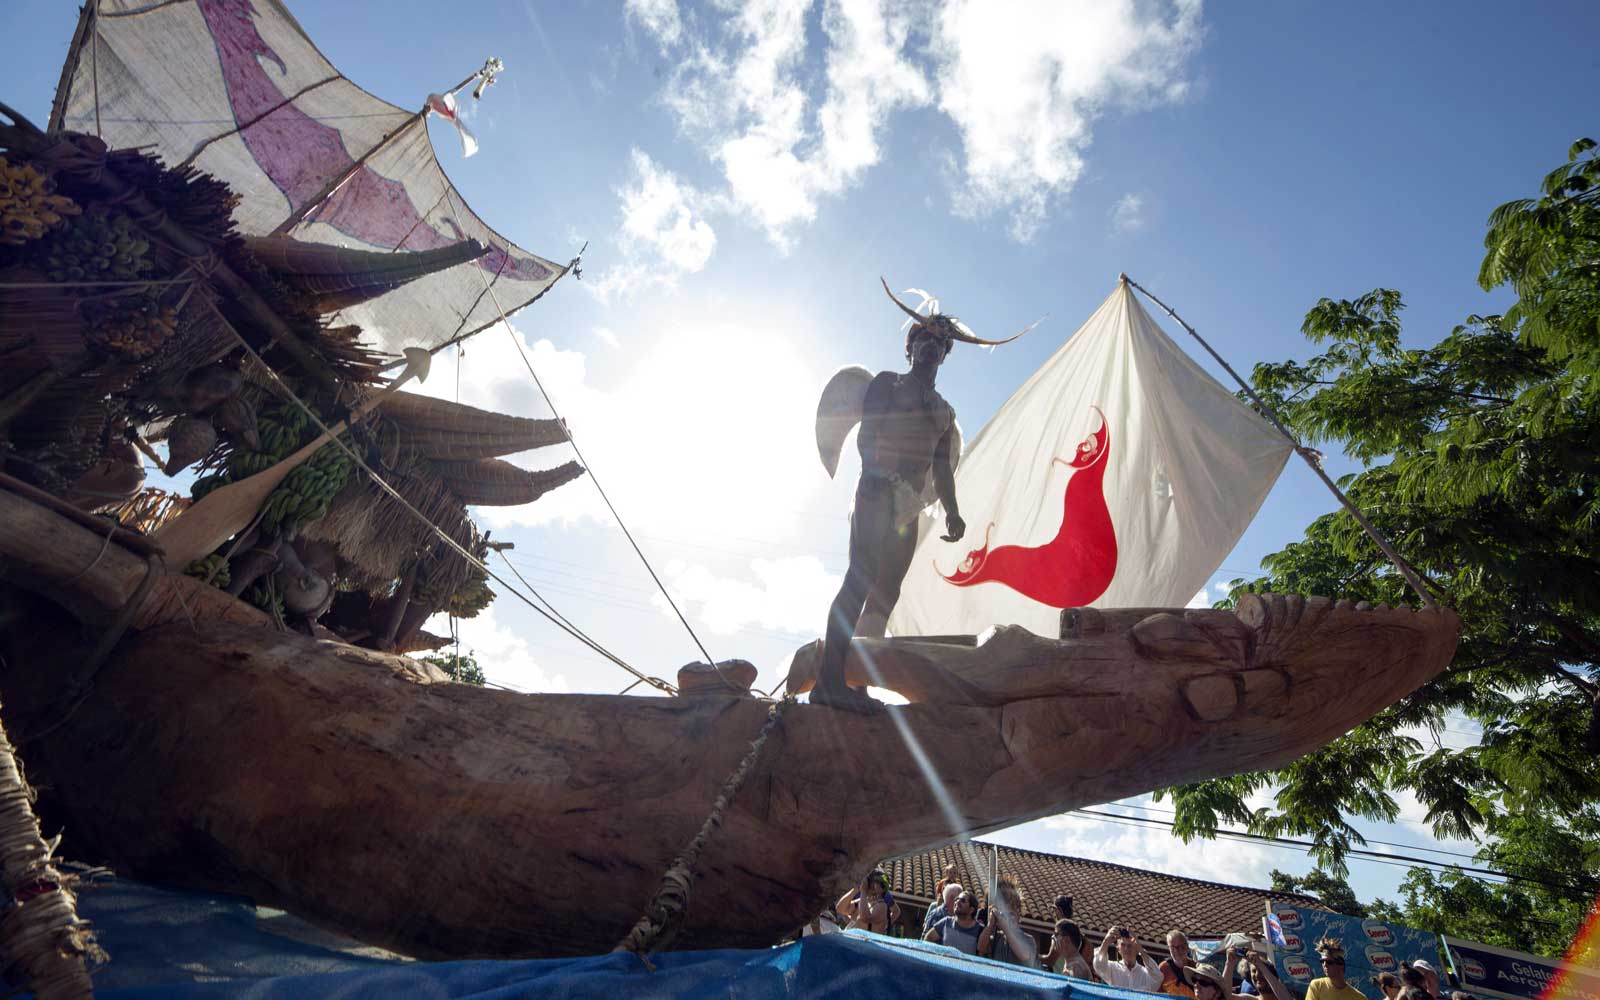 The Vaka made from a Eucalyptus tree seen during the parade on Easter Island during the Tapati Rapa Nui festival